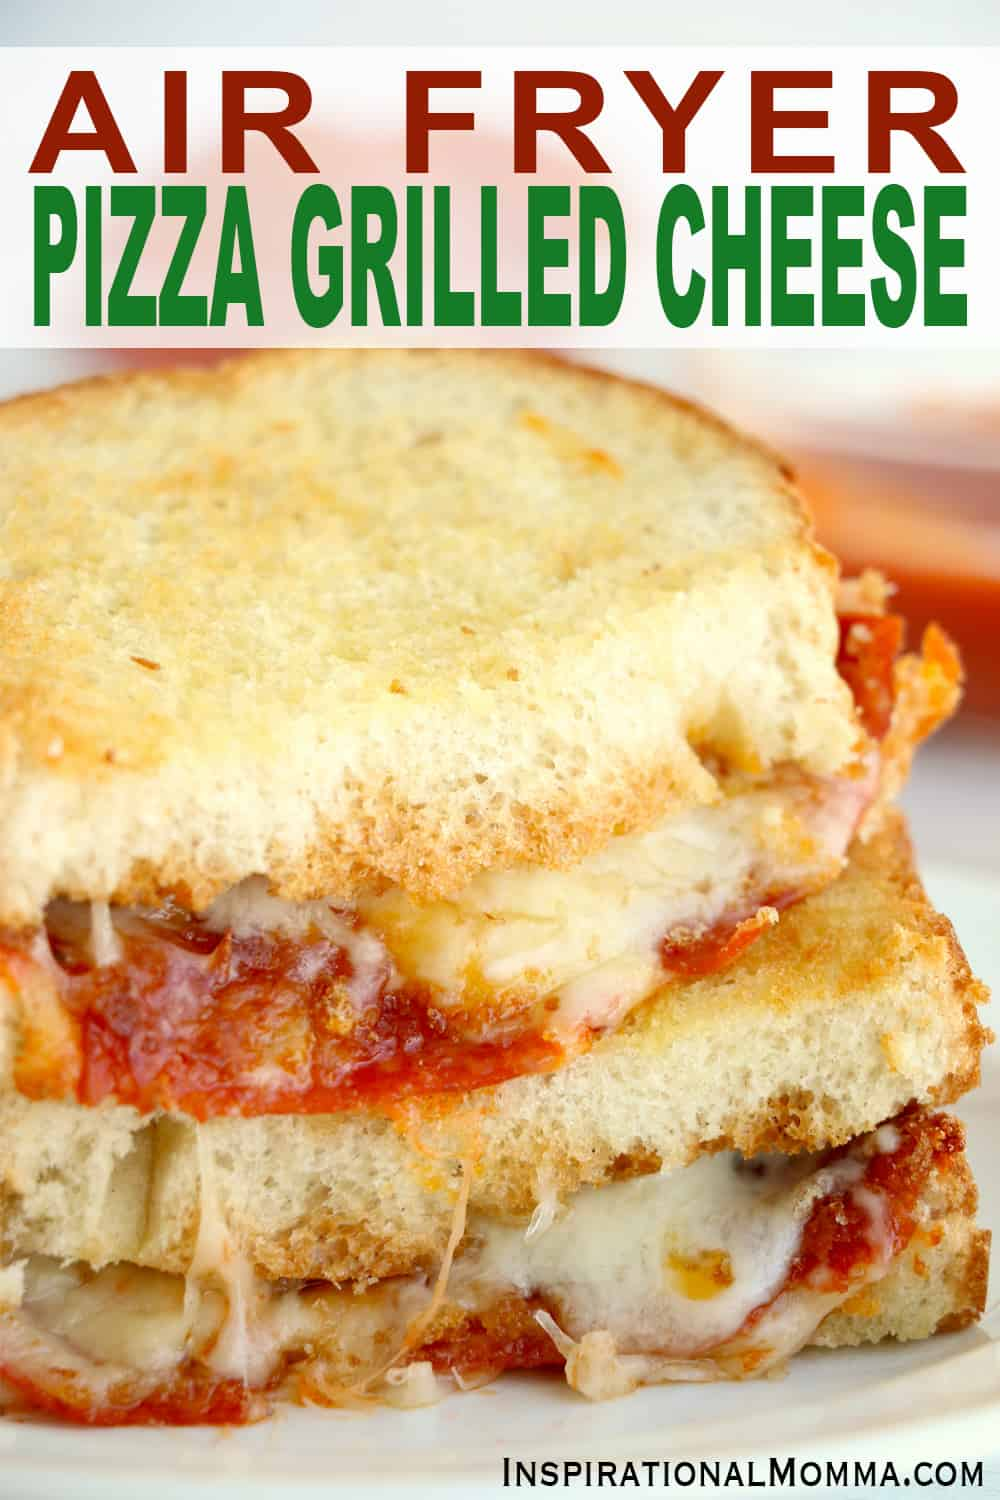 Looking for a new spin on a classic comfort dish? This Air Fryer Pizza Grilled Cheese is about to give your taste buds a delicious treat. #inspirationalmomma #airfryerpizzagrilledcheese #airfryergrilledcheese #airfryerrecipes #grilledcheese #pizzagrilledcheese